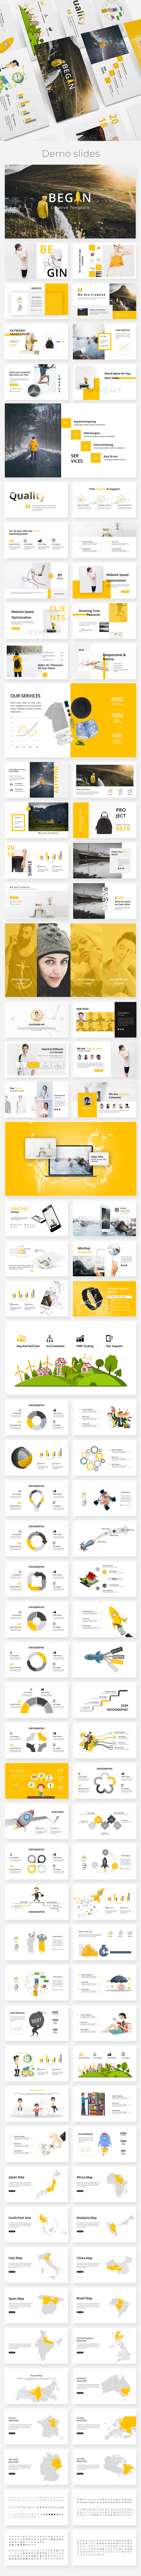 Begin Creative Google Slide Template - Google Slides Presentation Templates